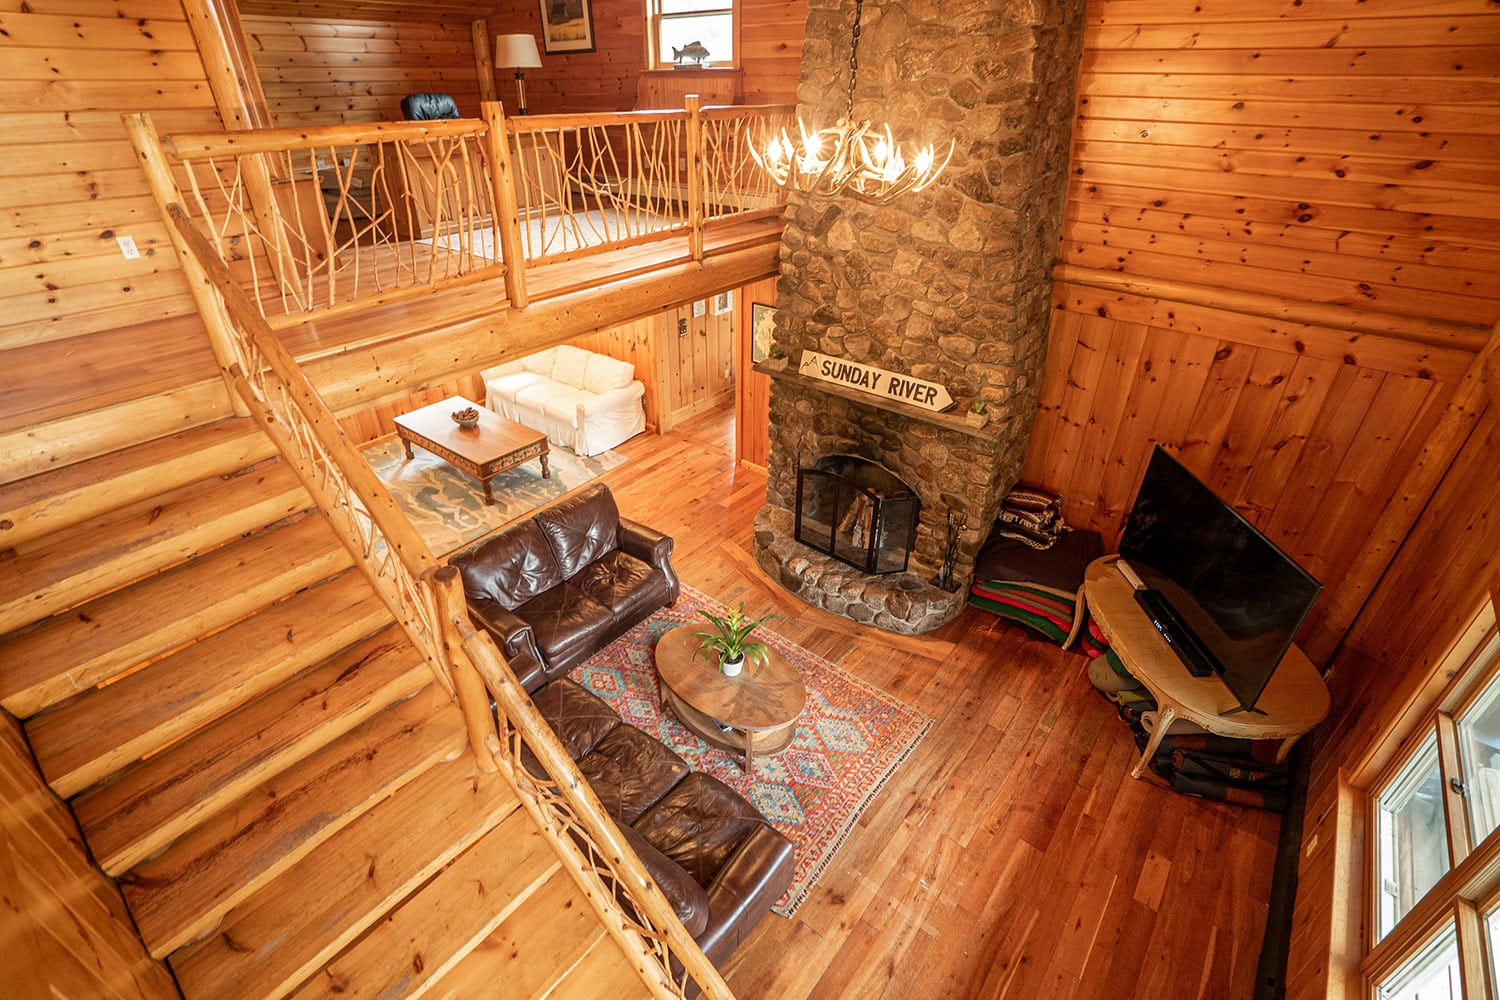 A photo of the living room area at Foundation House's FoxHole Ranch.